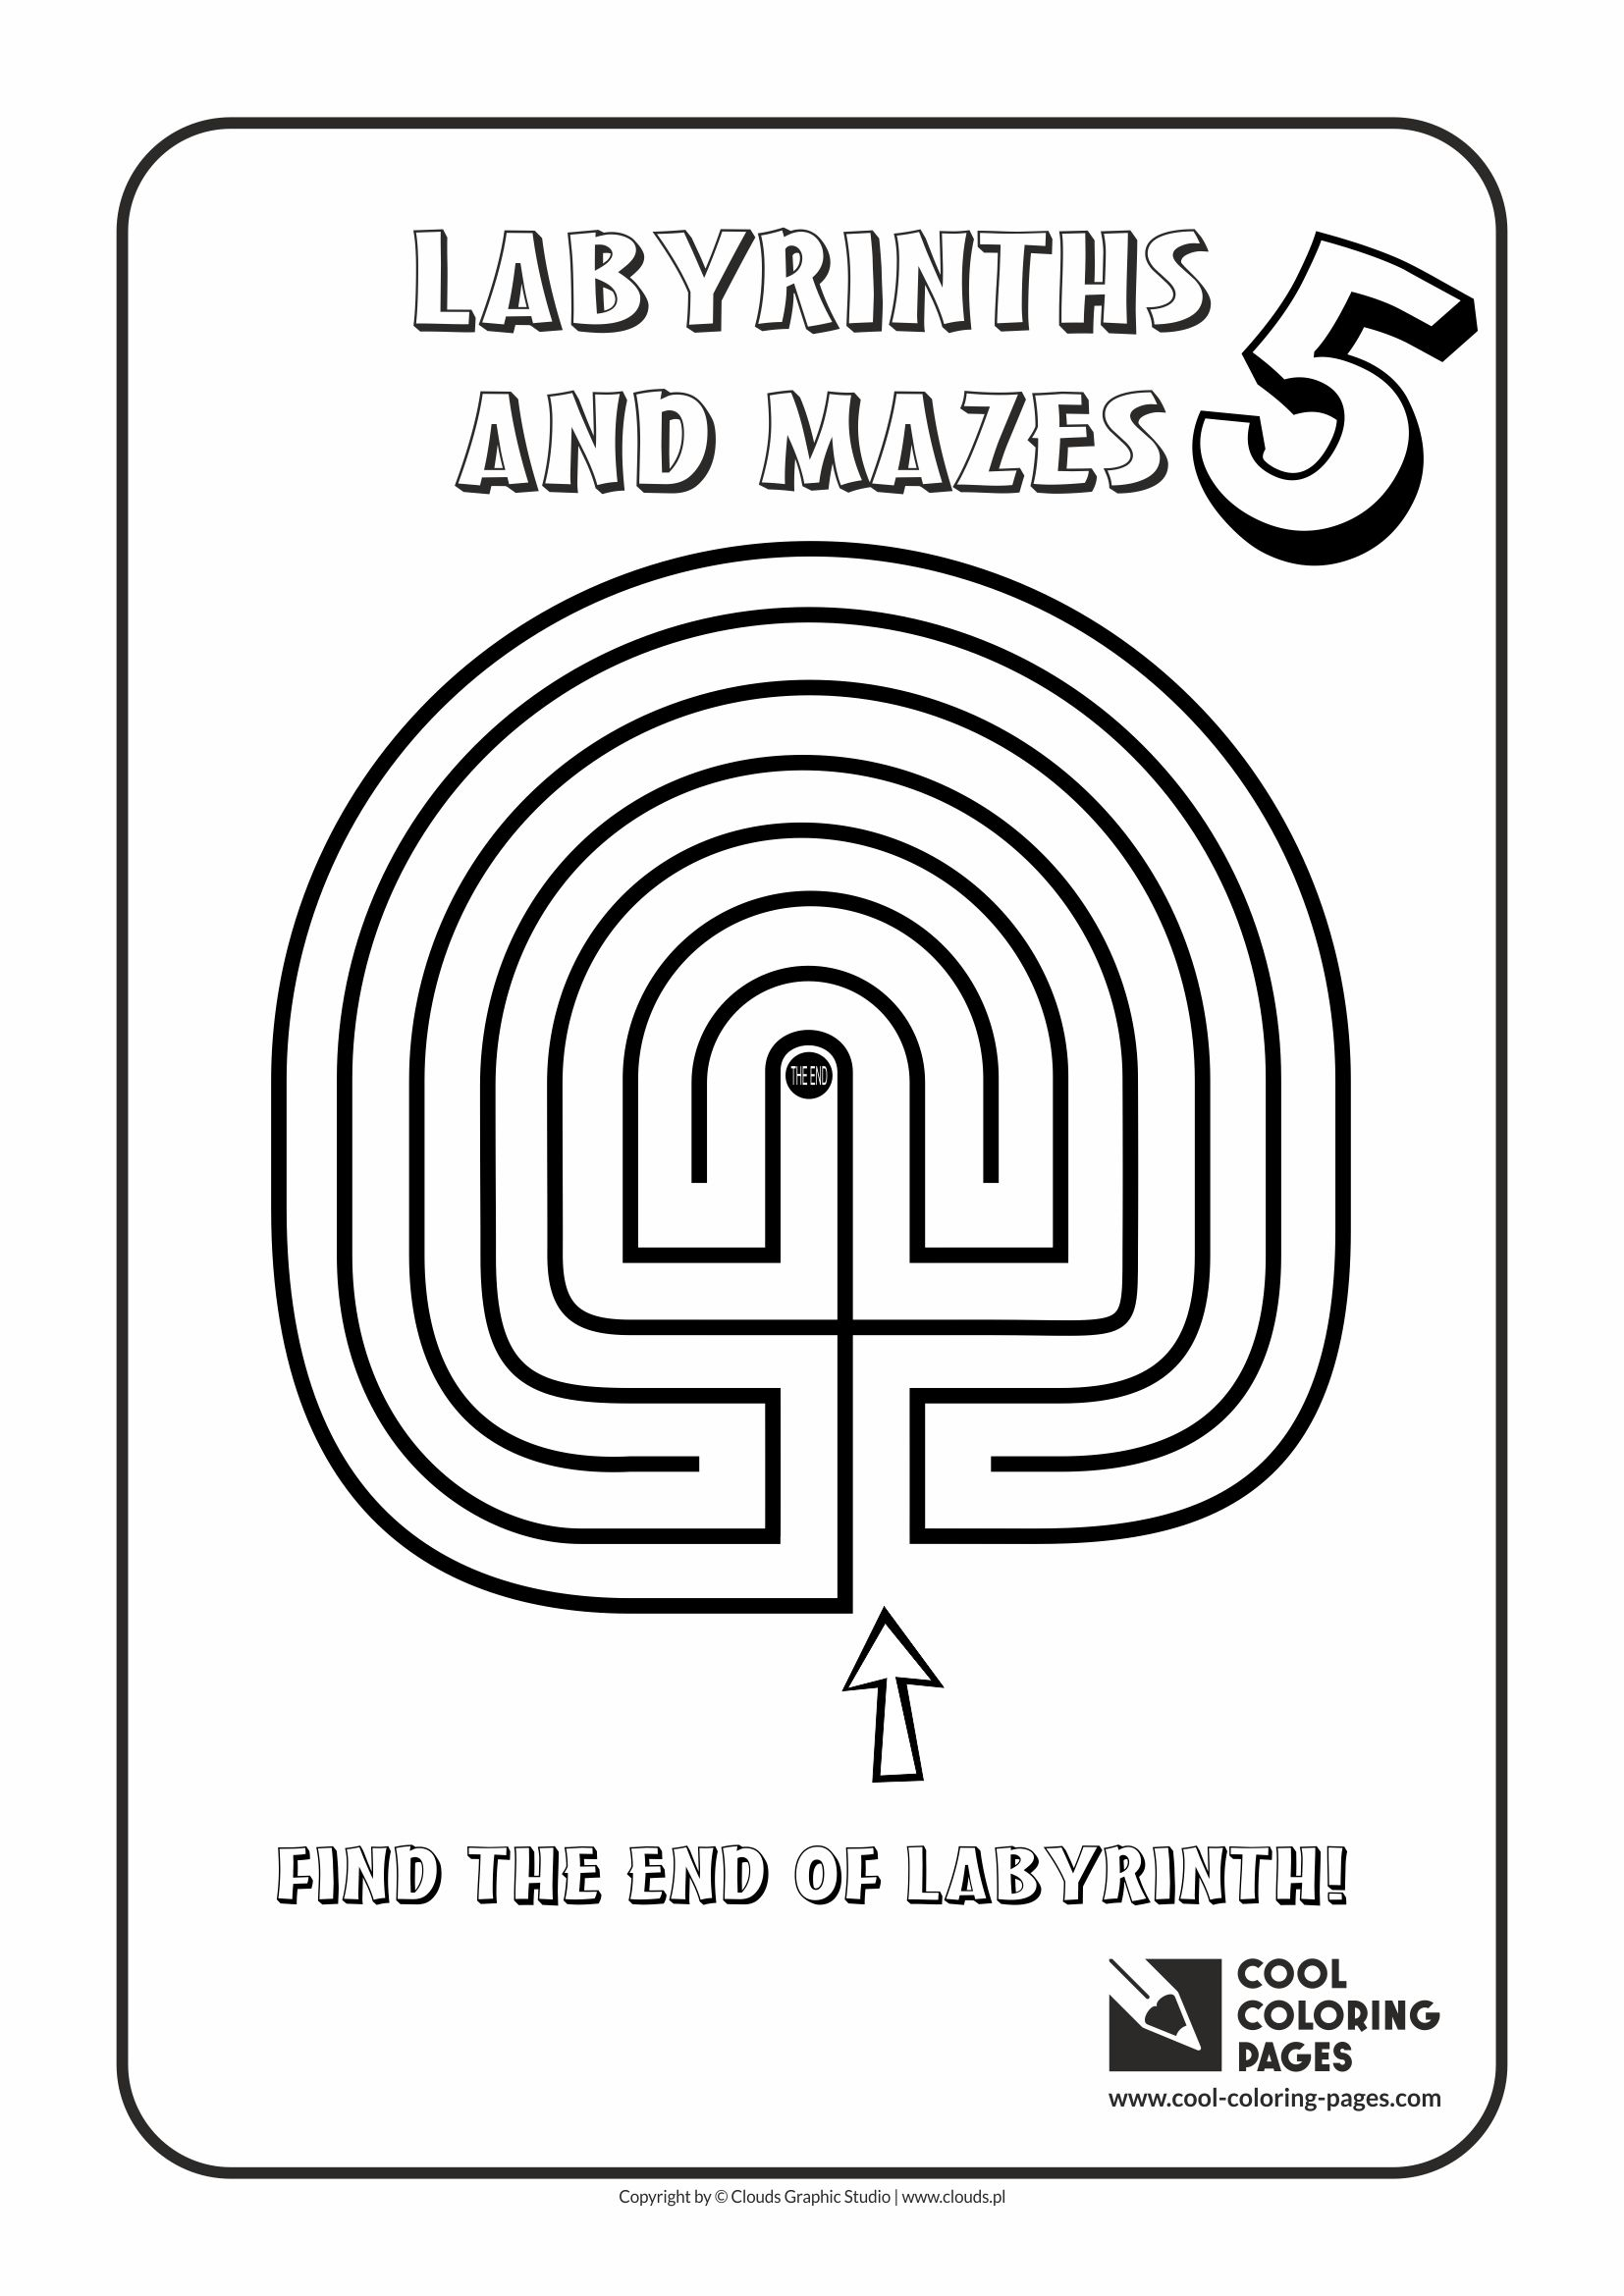 Cool Coloring Pages - Labyrinths and mazes / Maze no 5